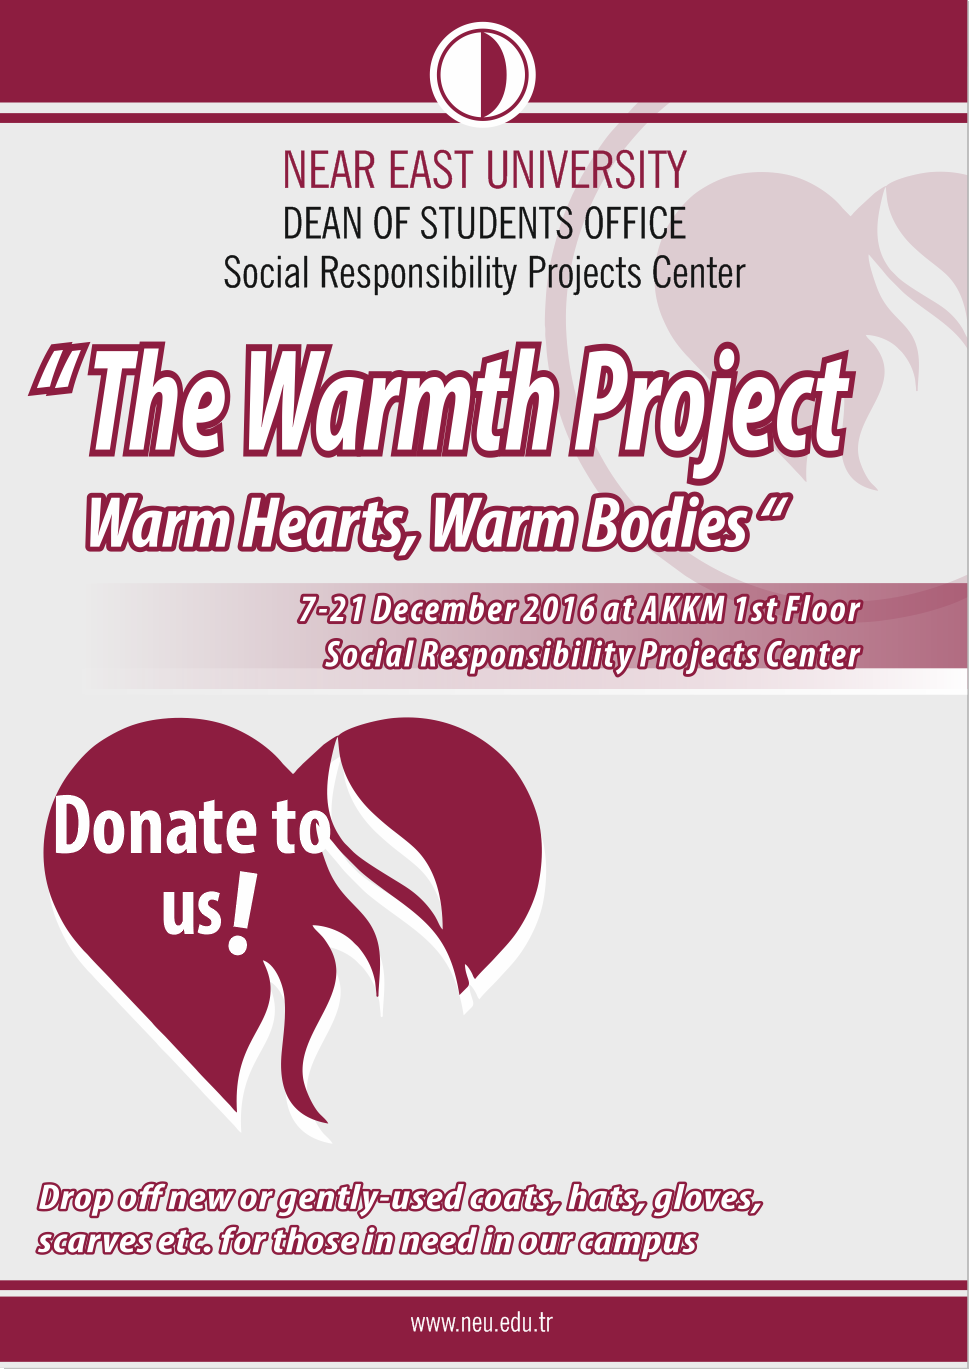 "NEU Dean of Students Office, Social Responsibility Projects Center: ""The Warmth Project Warm Hearts, Warm Bodies"""